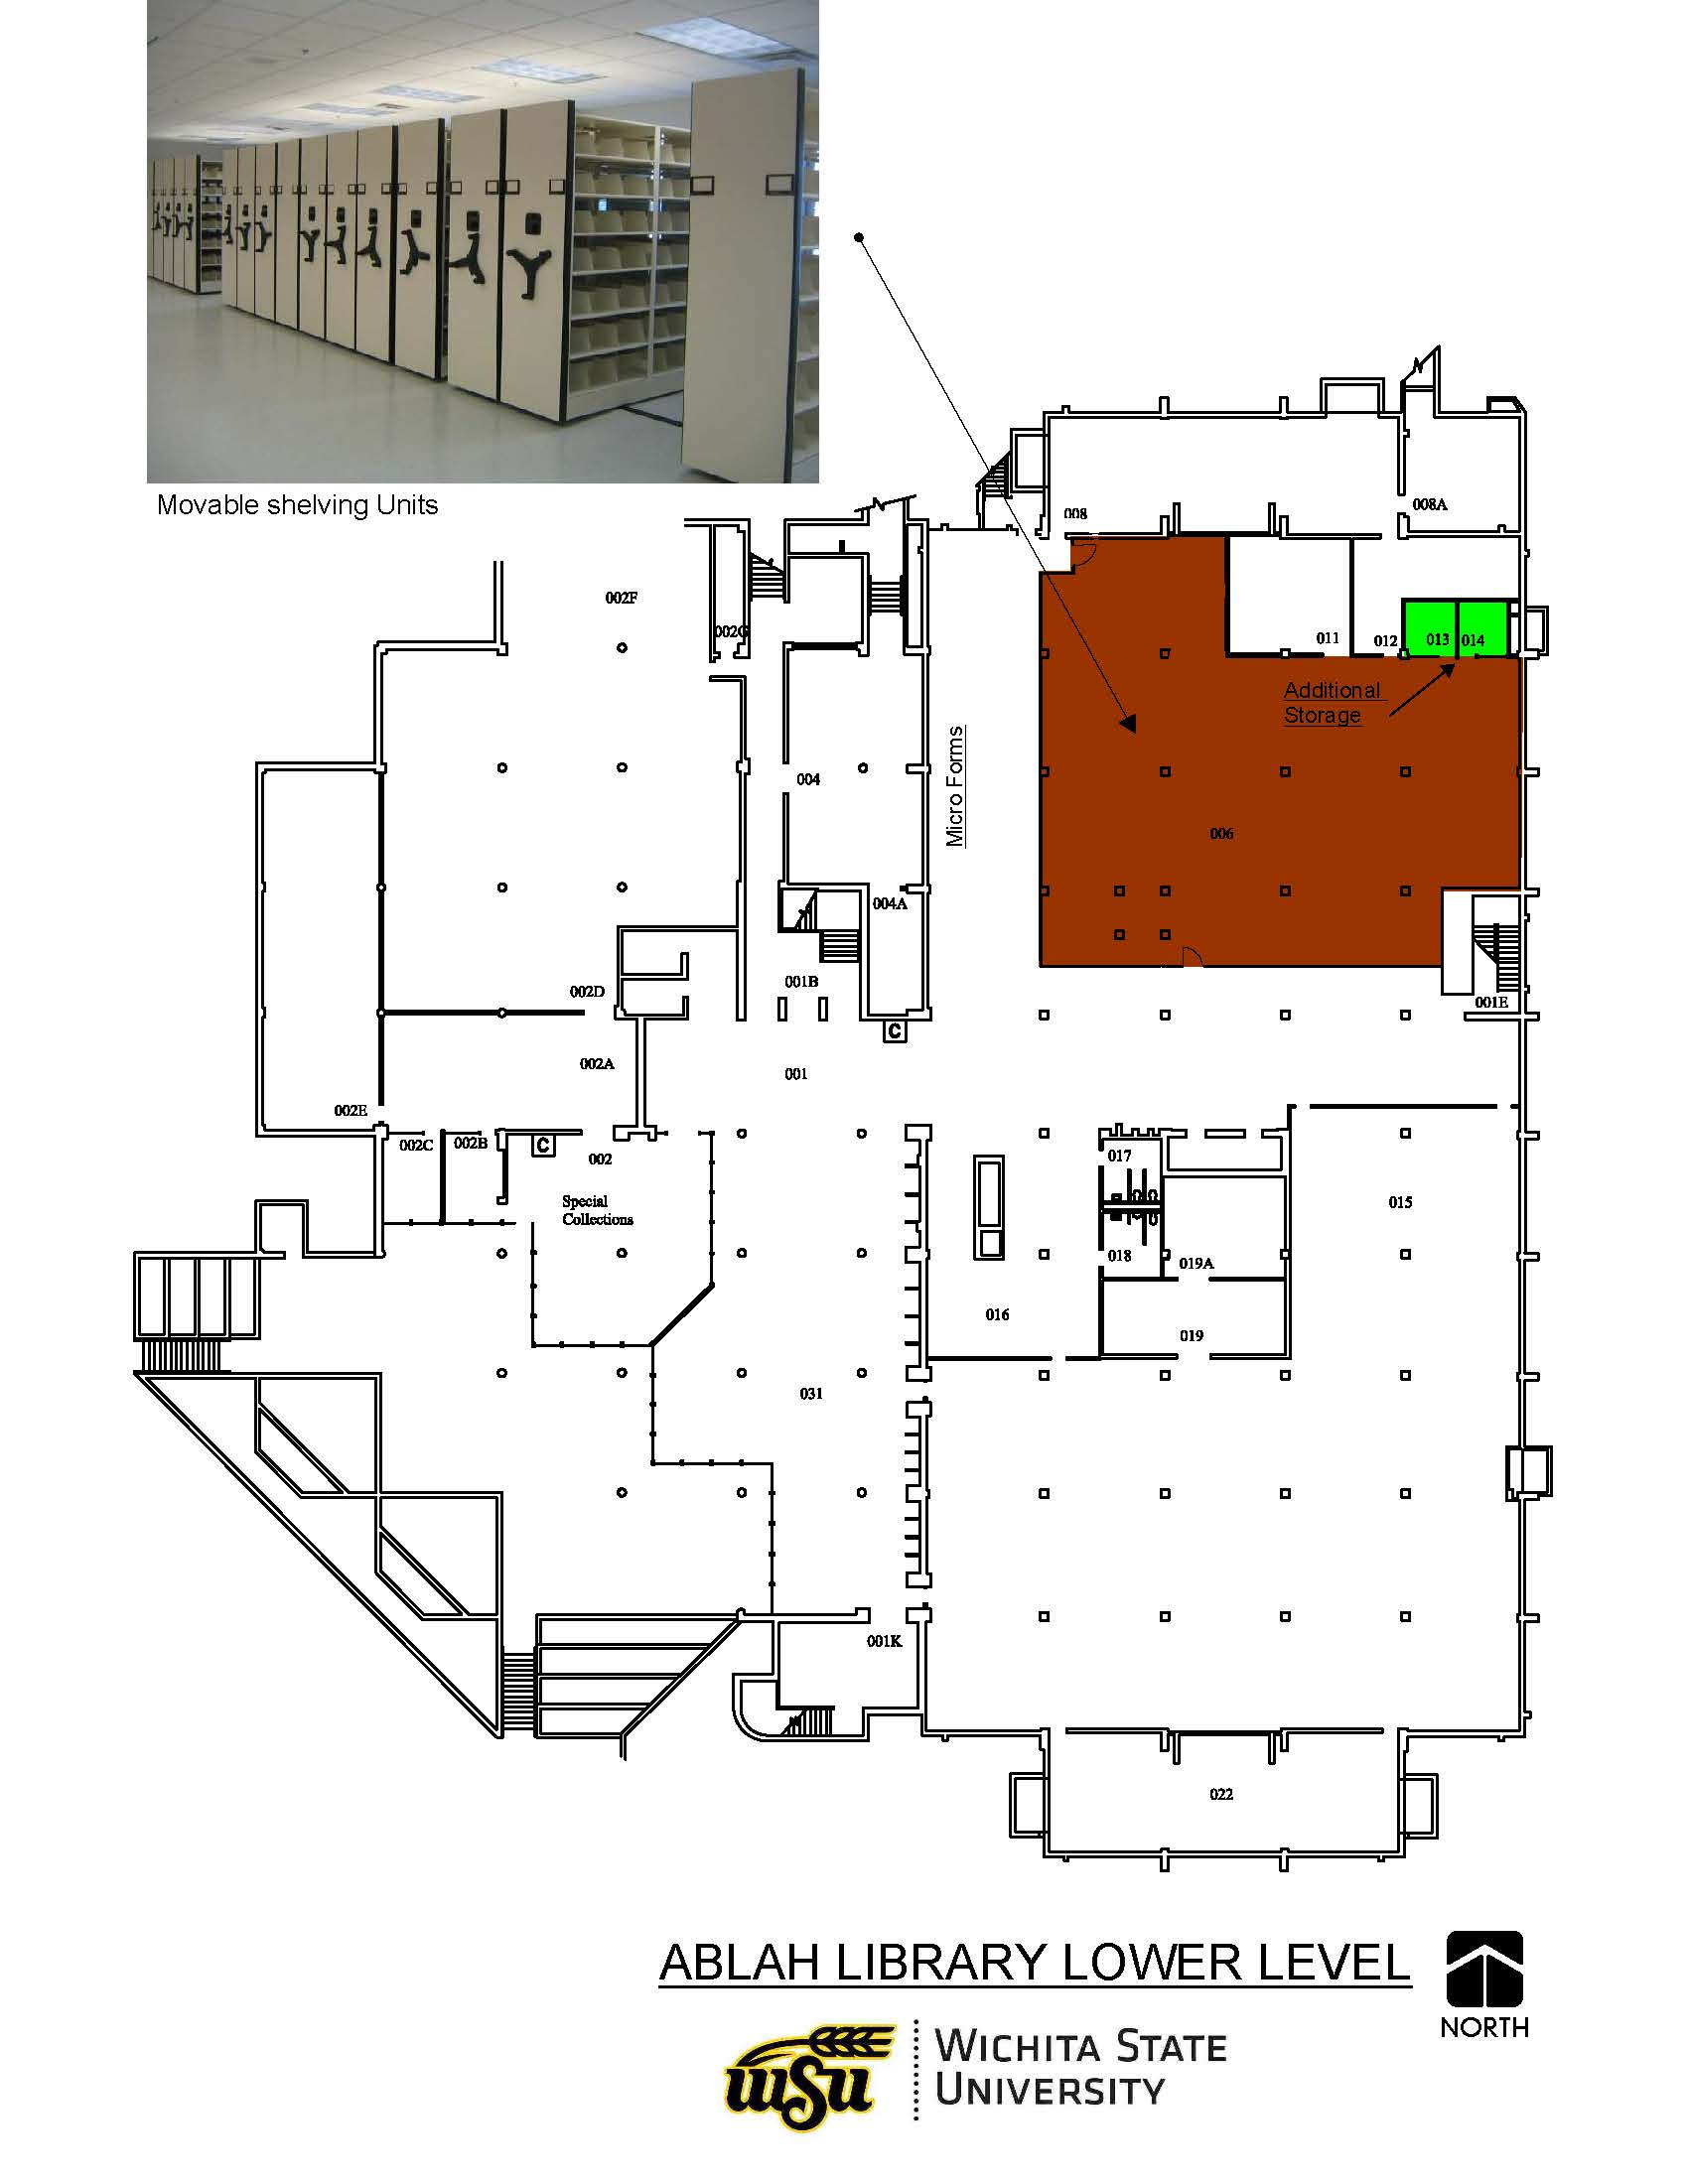 floor plan for Ablah Library's lower level